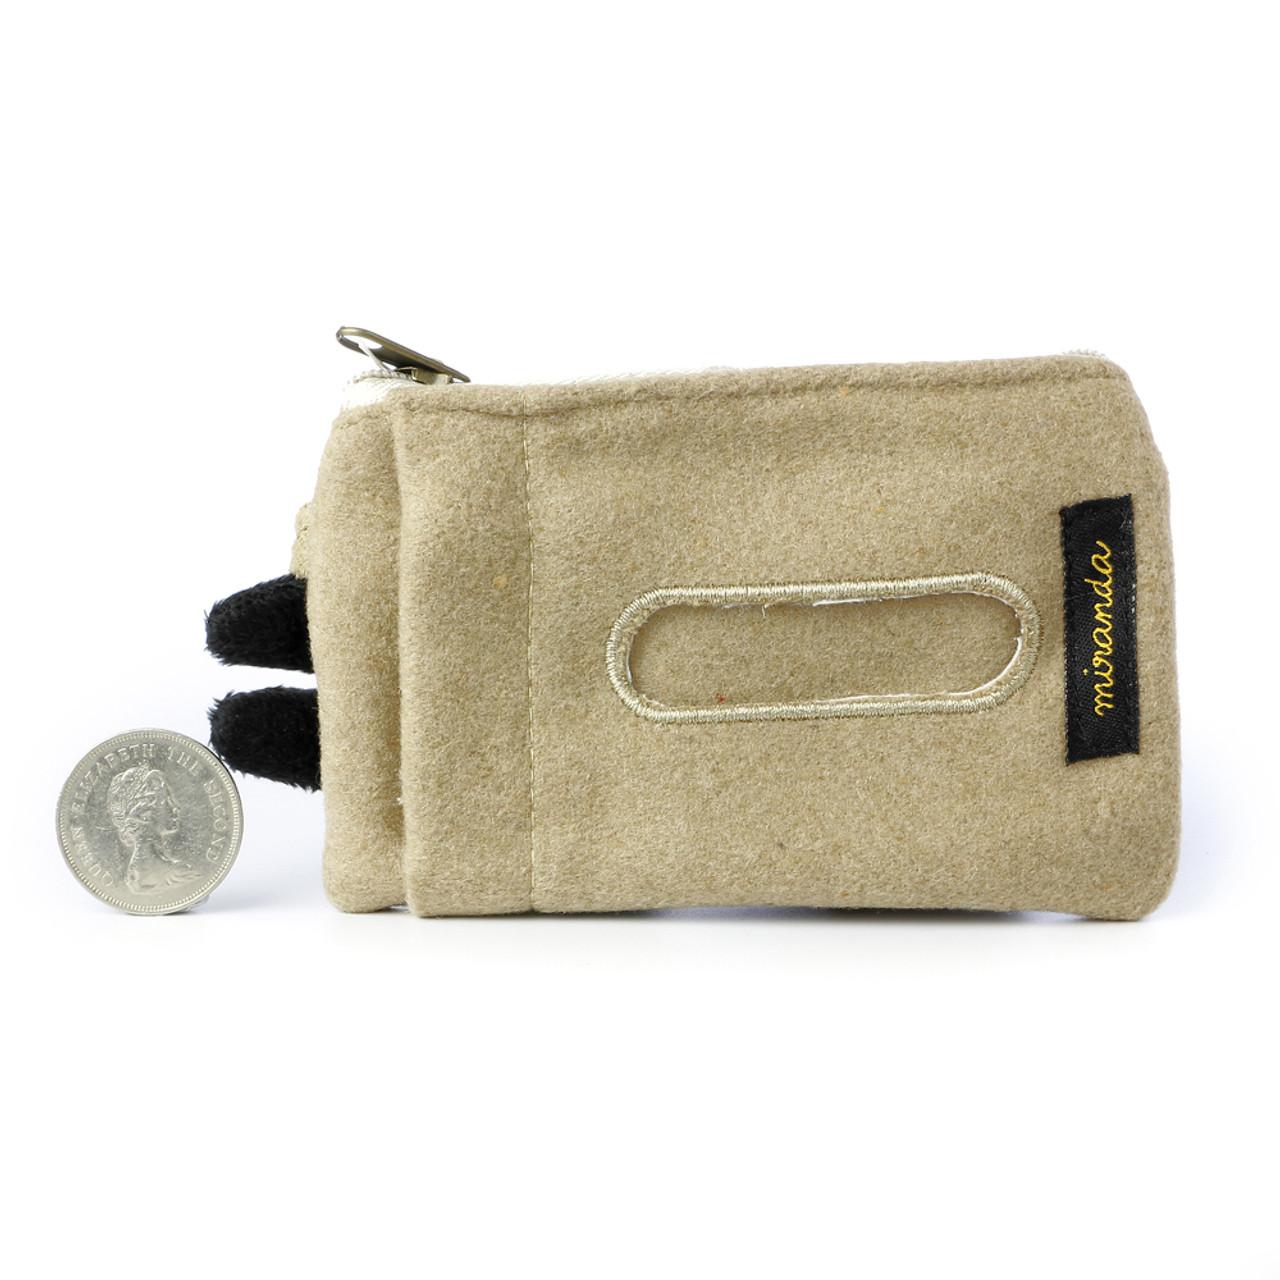 Decole Miranda Black Cat Coins And Smart Card Pouch With Purse Strap ( Back View )